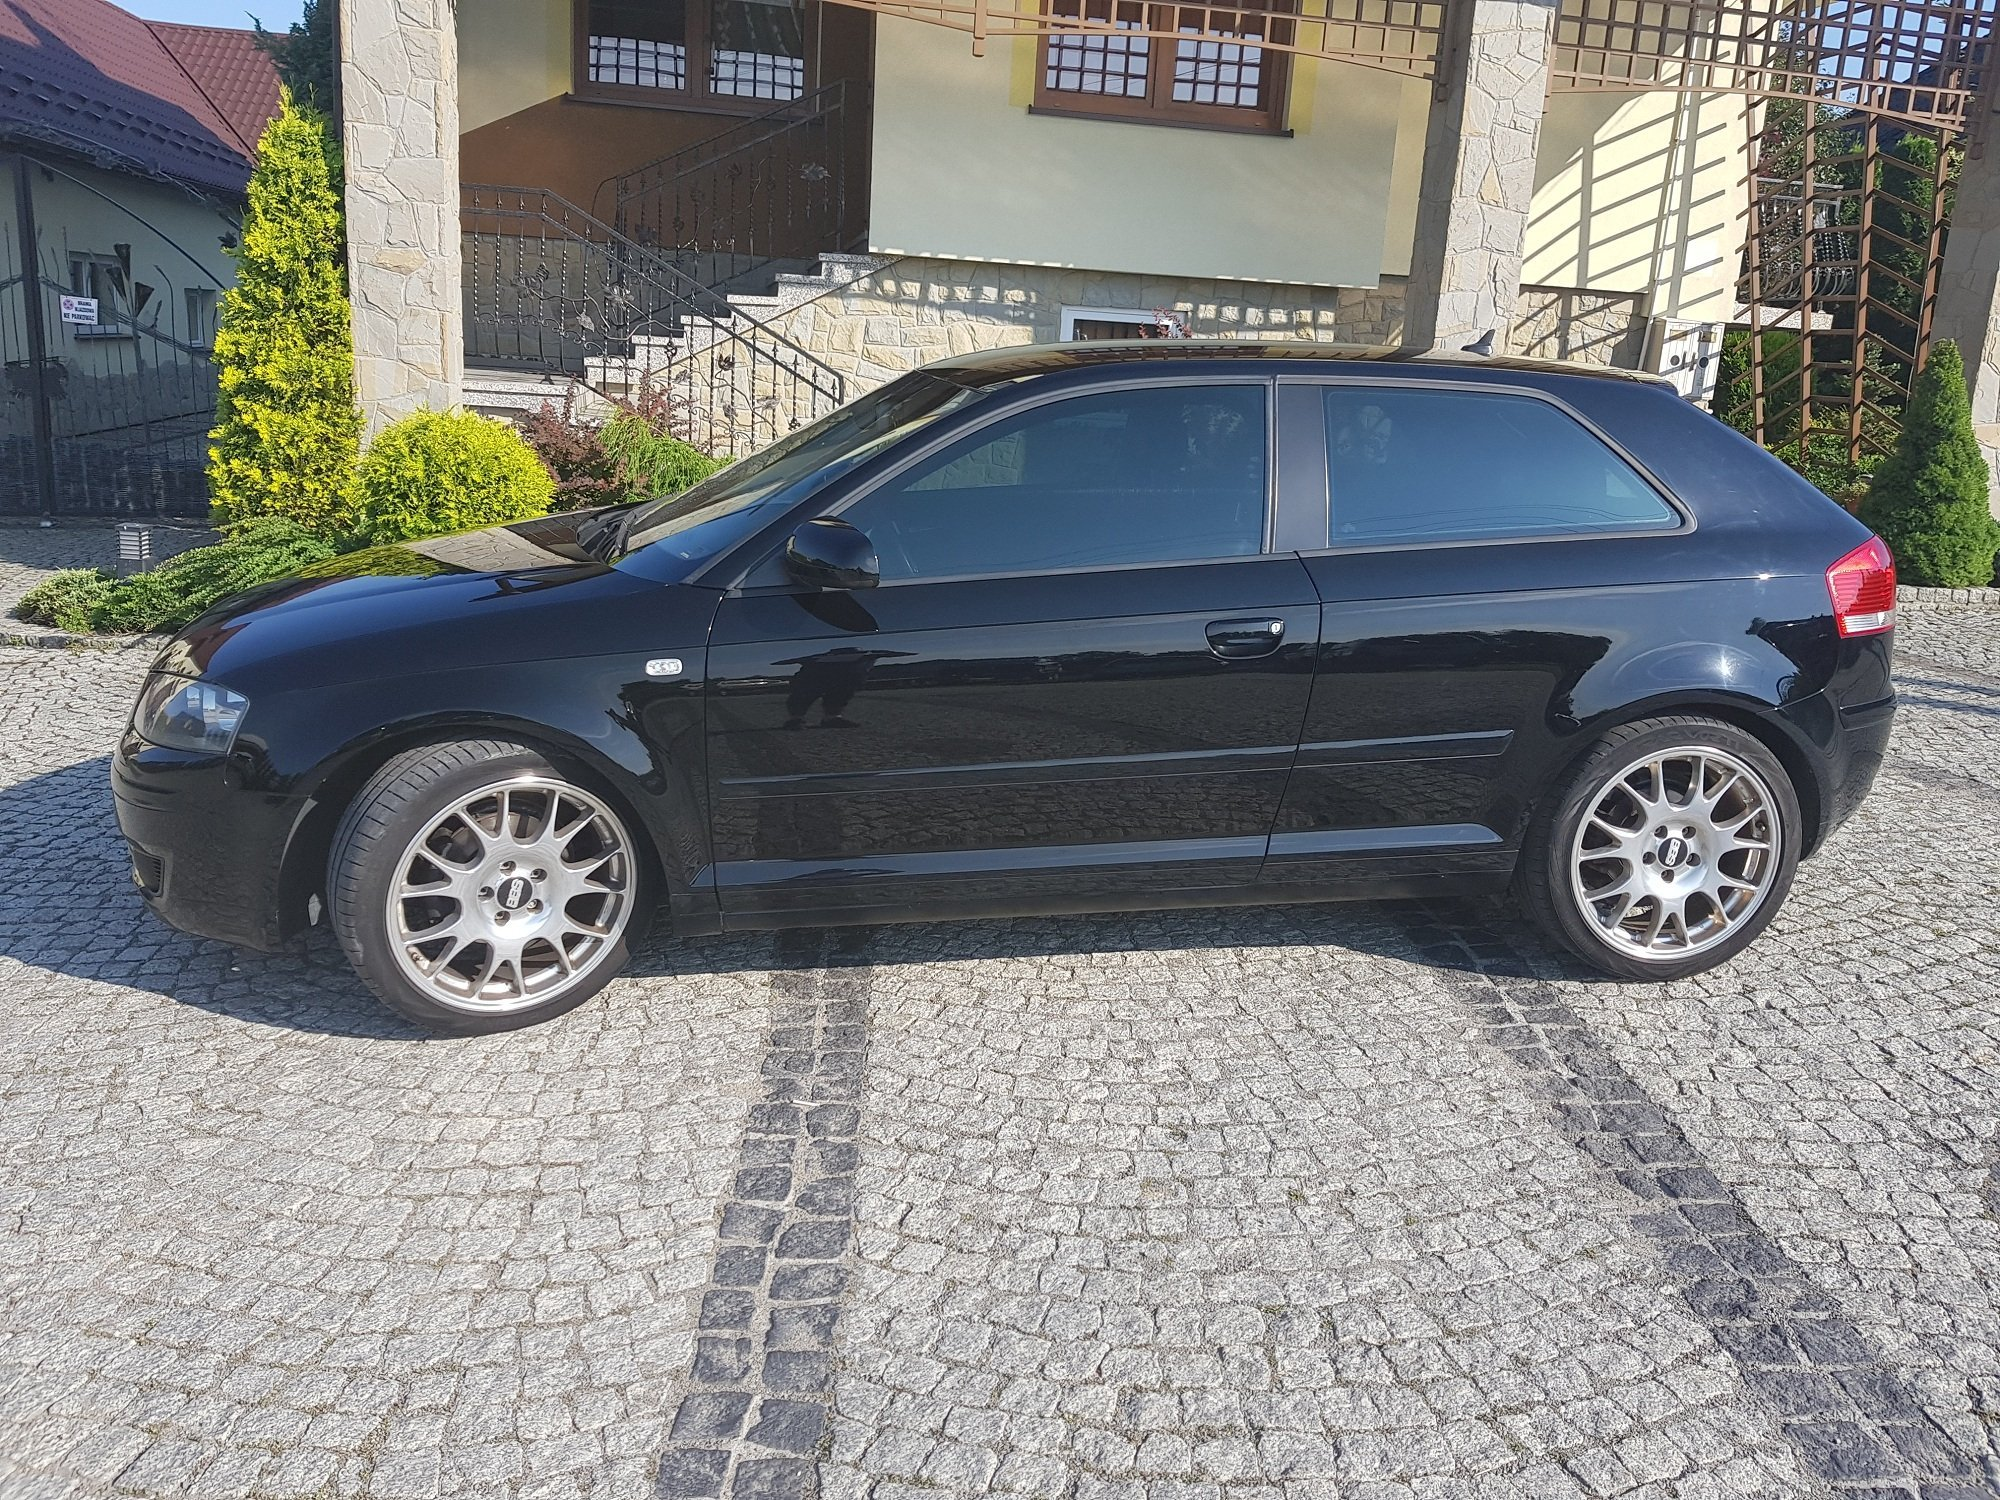 audi a3 8p 2004 1 9 tdi bkc xenon pdc navi 18 bbs. Black Bedroom Furniture Sets. Home Design Ideas